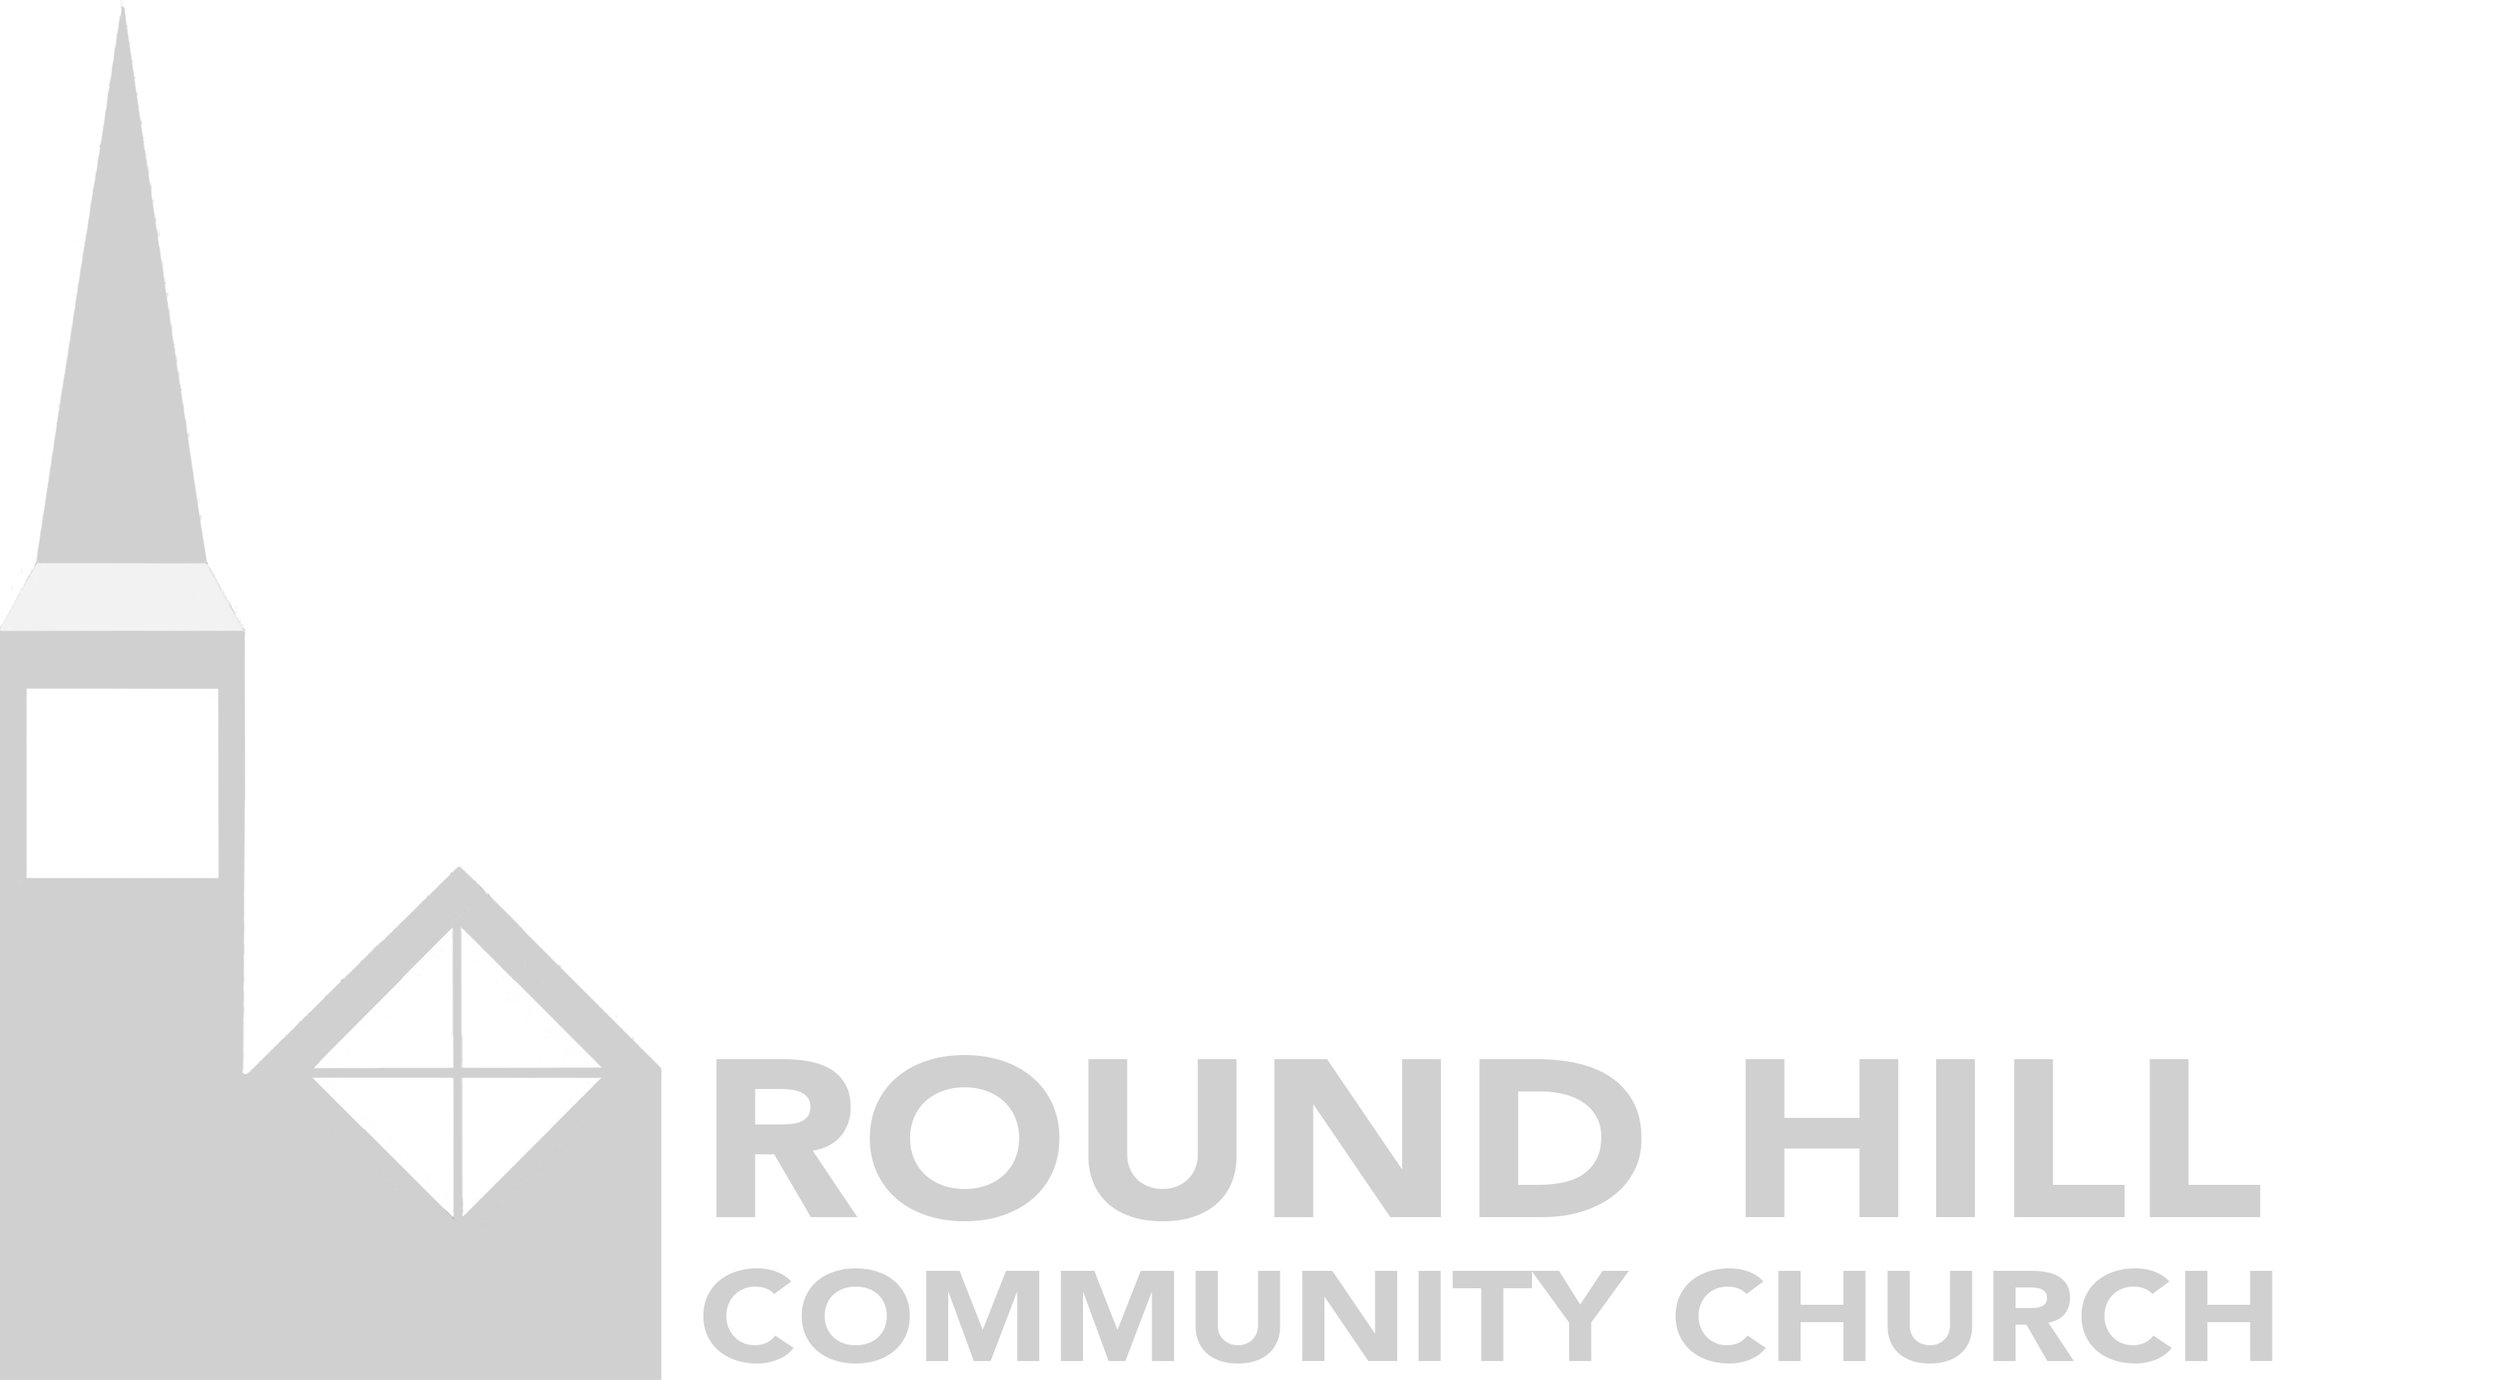 Welcoming our 2019 community honoree - The Members of the Round Hill Community Church, a self-governing, non-denominational body, seek to foster a community of faith where people of all ages and backgrounds pursue spiritual growth.